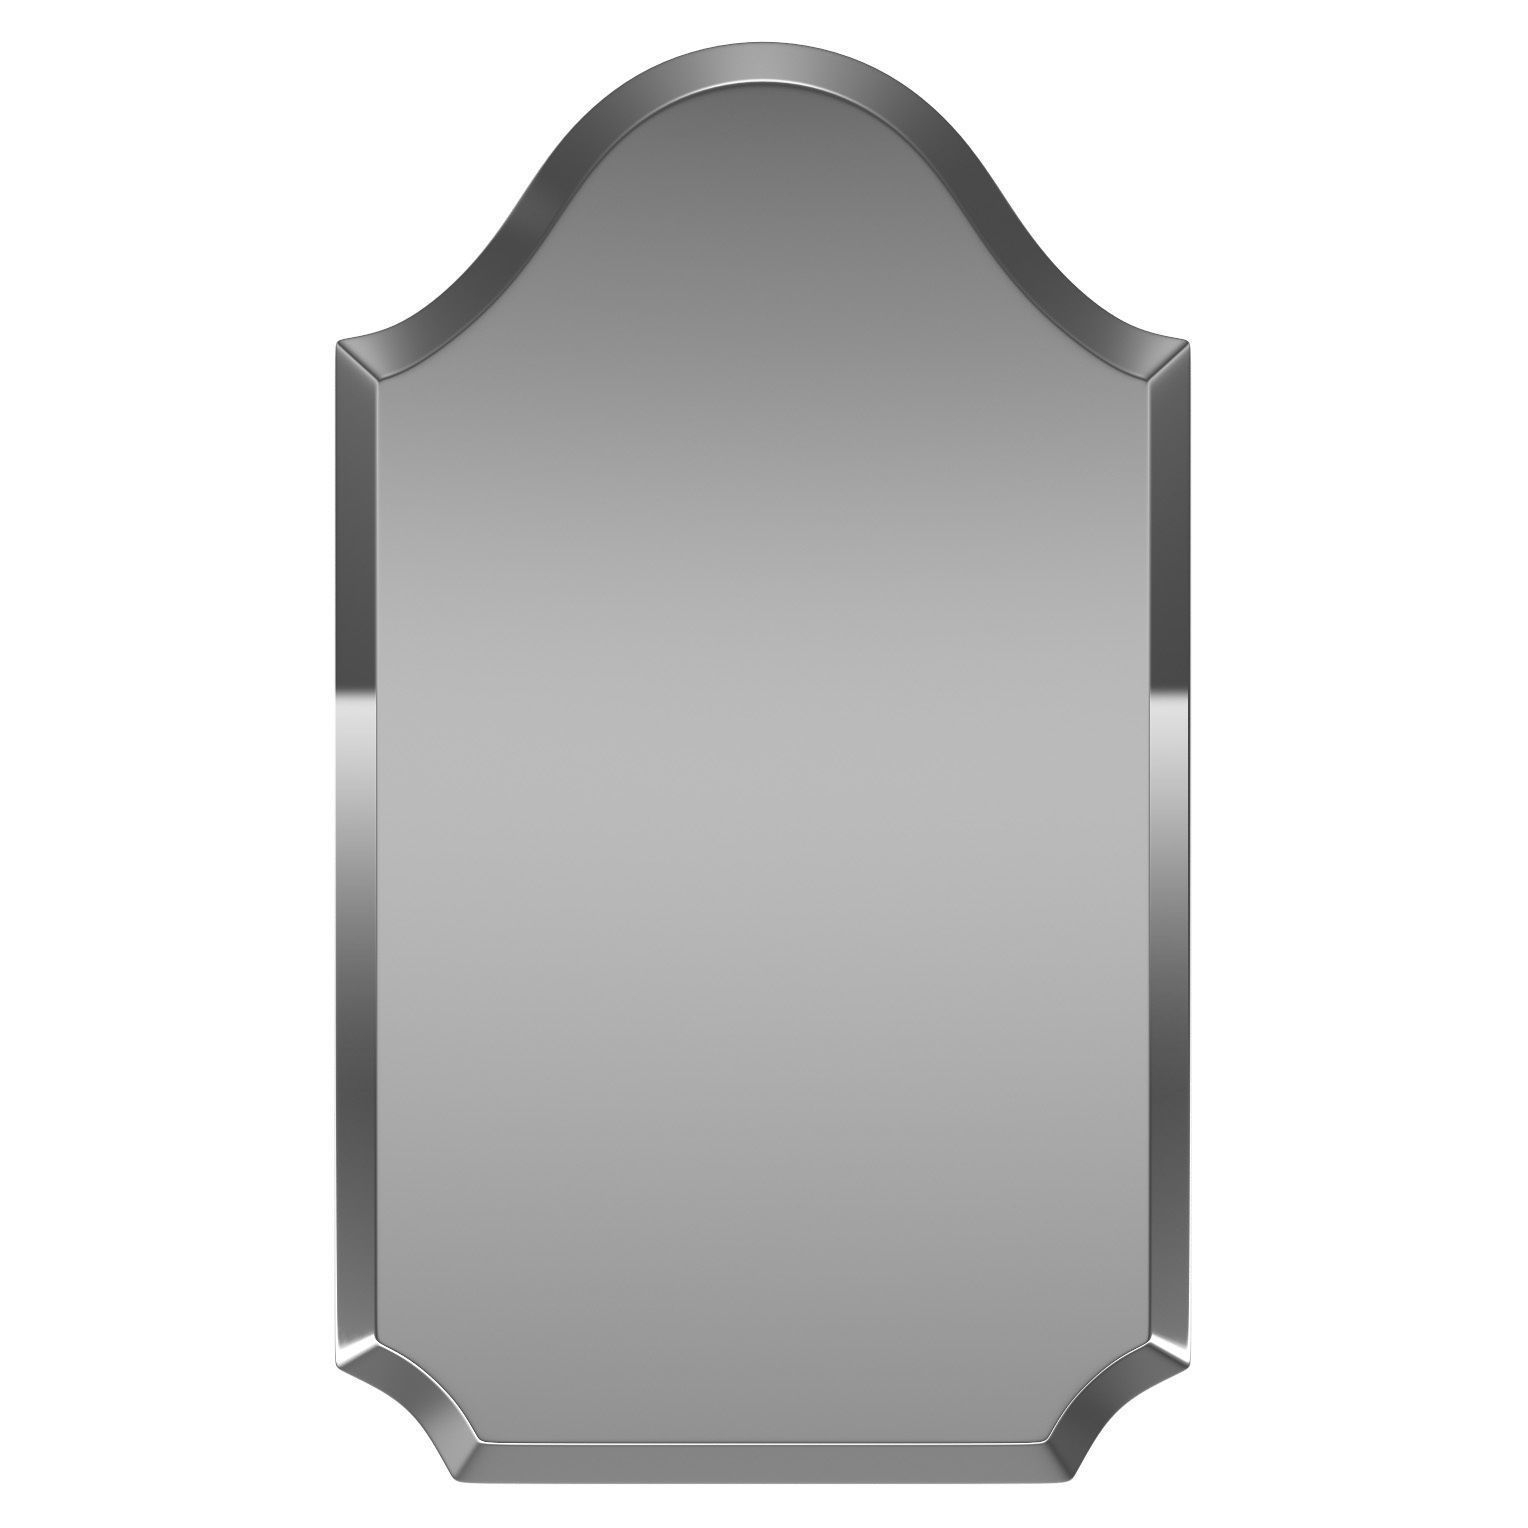 Dariel Tall Arched Scalloped Wall Mirror Wrlo6854 | 3D Model Throughout Dariel Tall Arched Scalloped Wall Mirrors (Image 8 of 20)